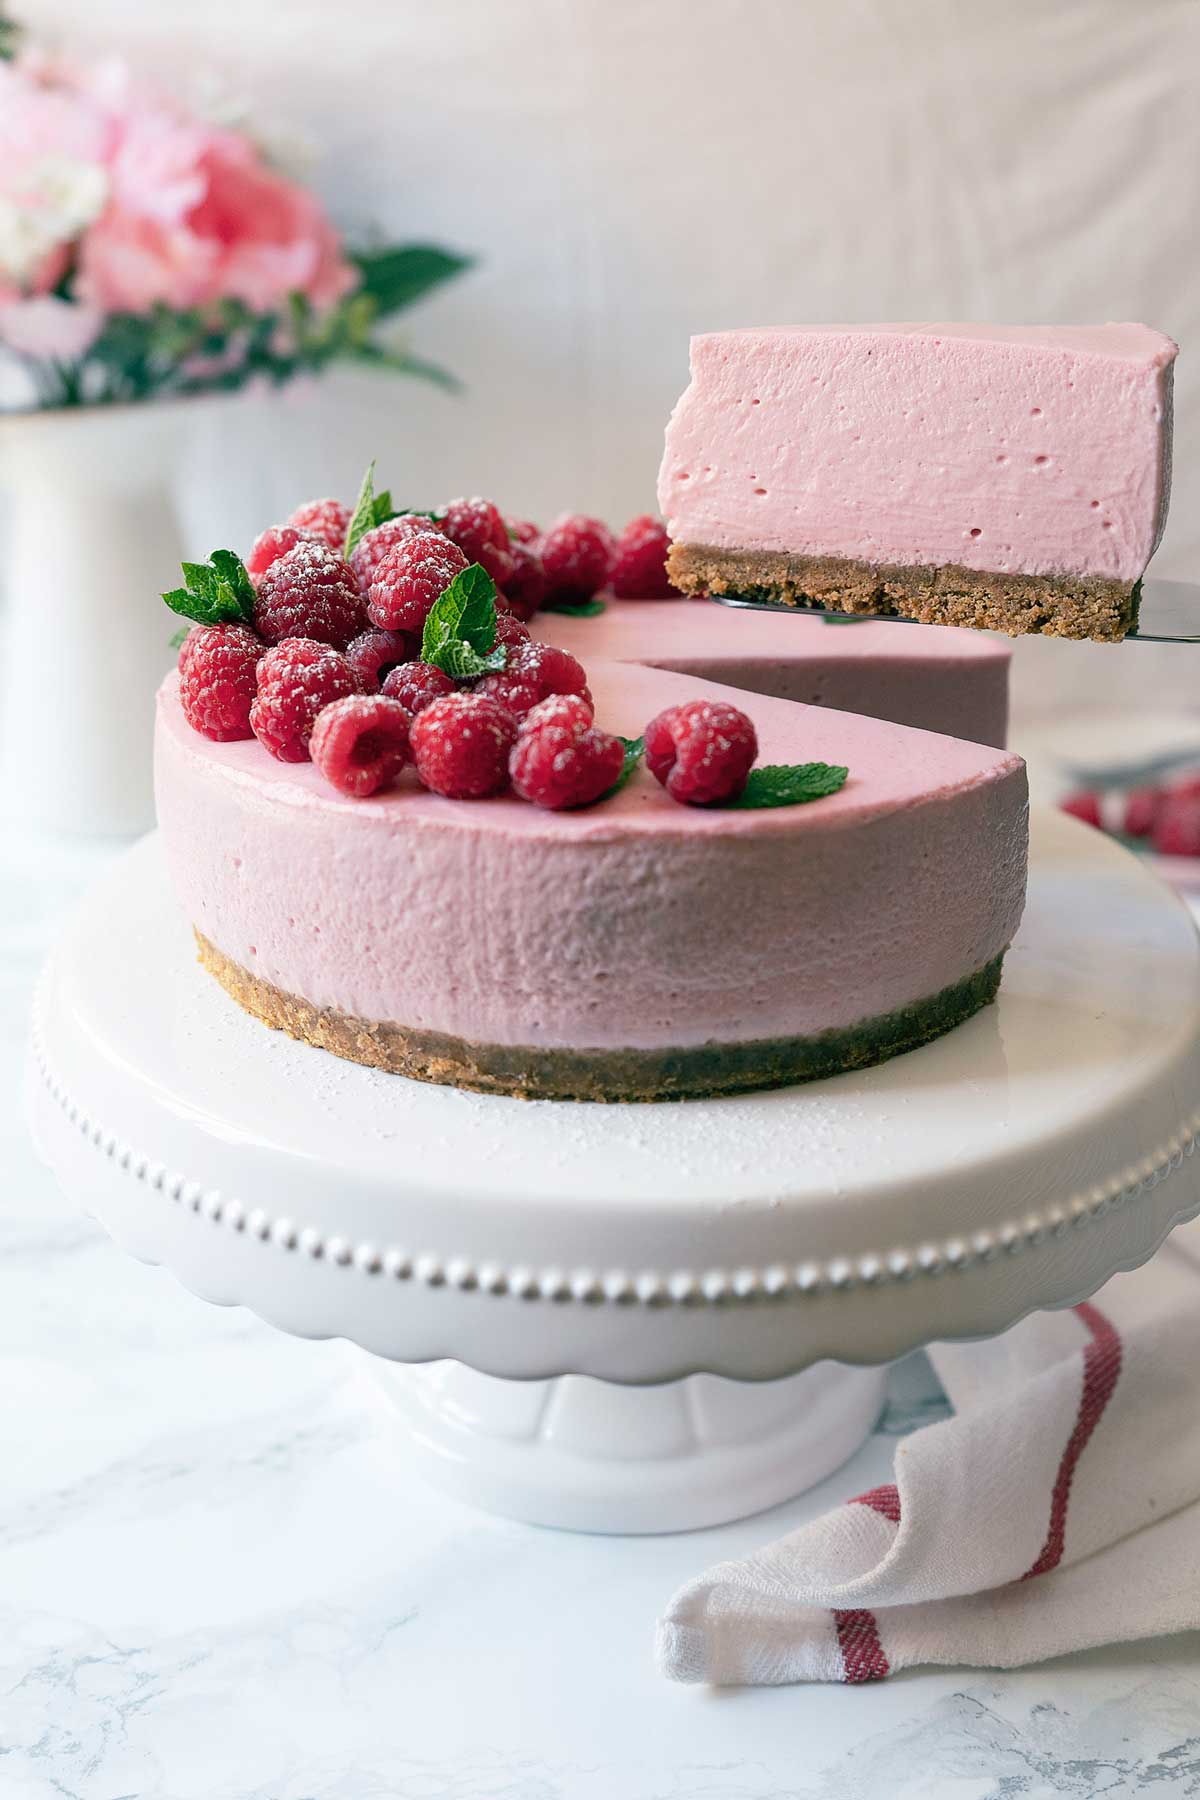 Serving a portion of no-bake raspberry cheesecake